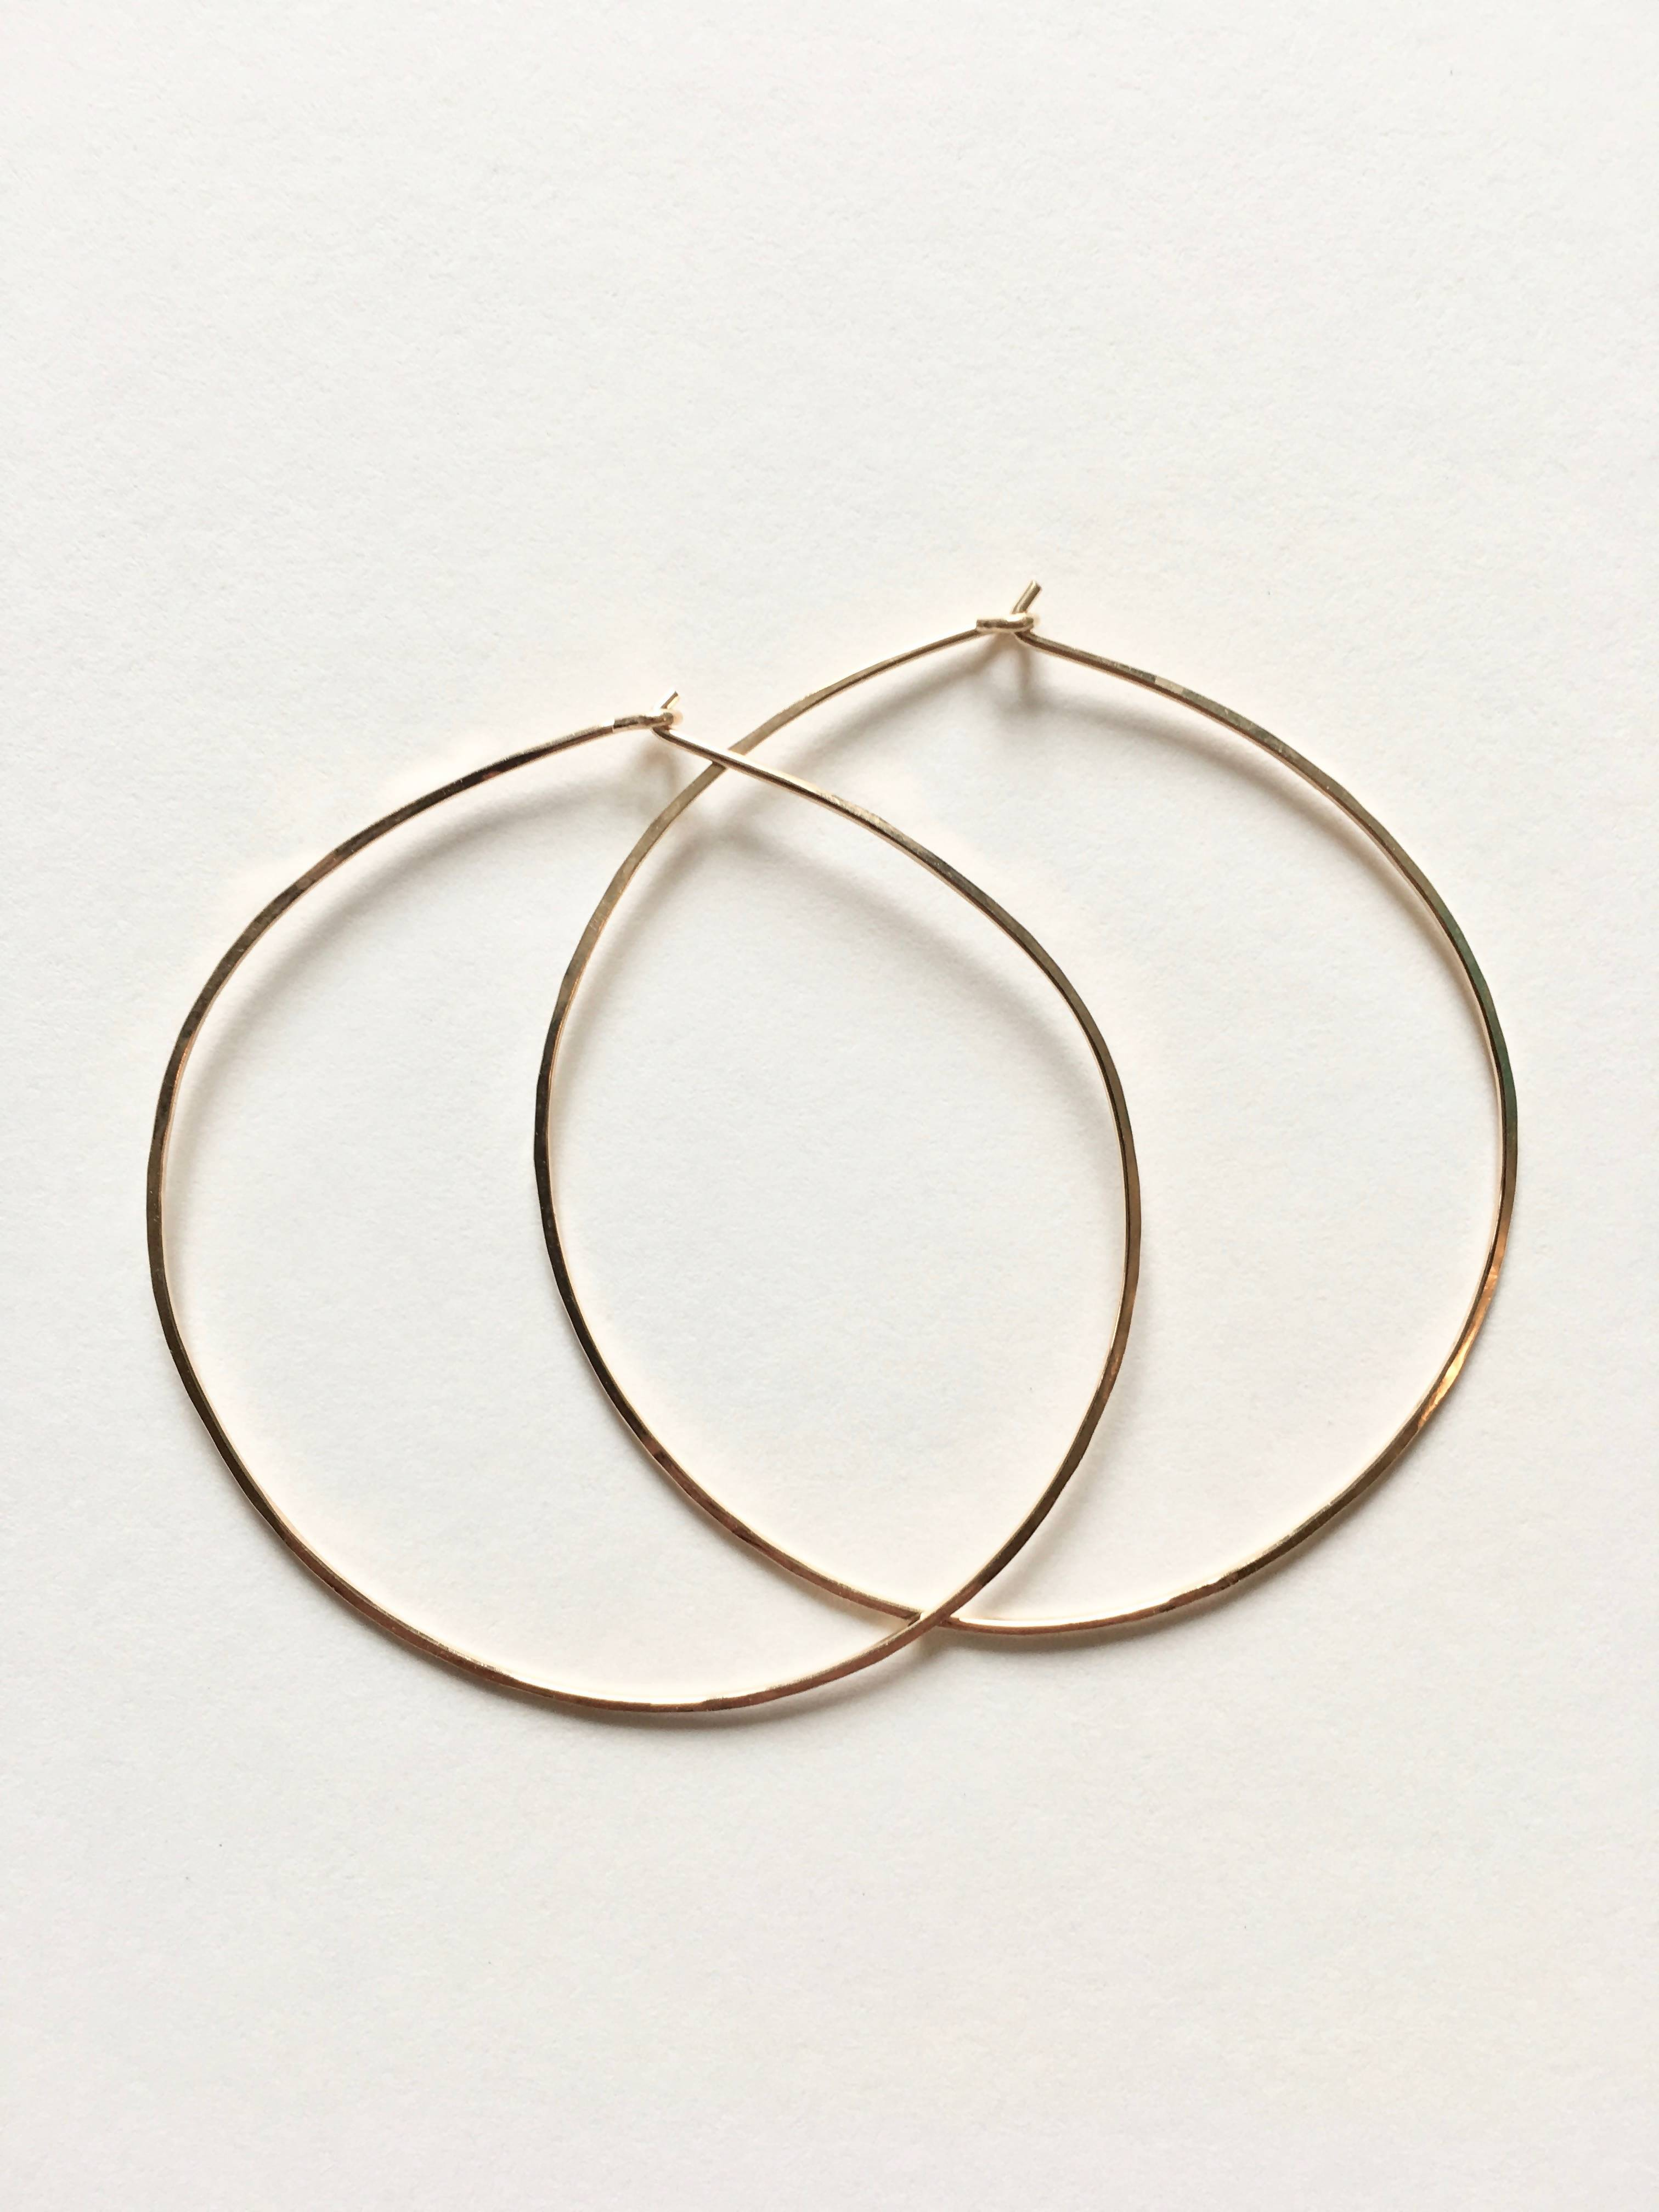 Hand Hammered Thin Wire Hoop Earrings - Small